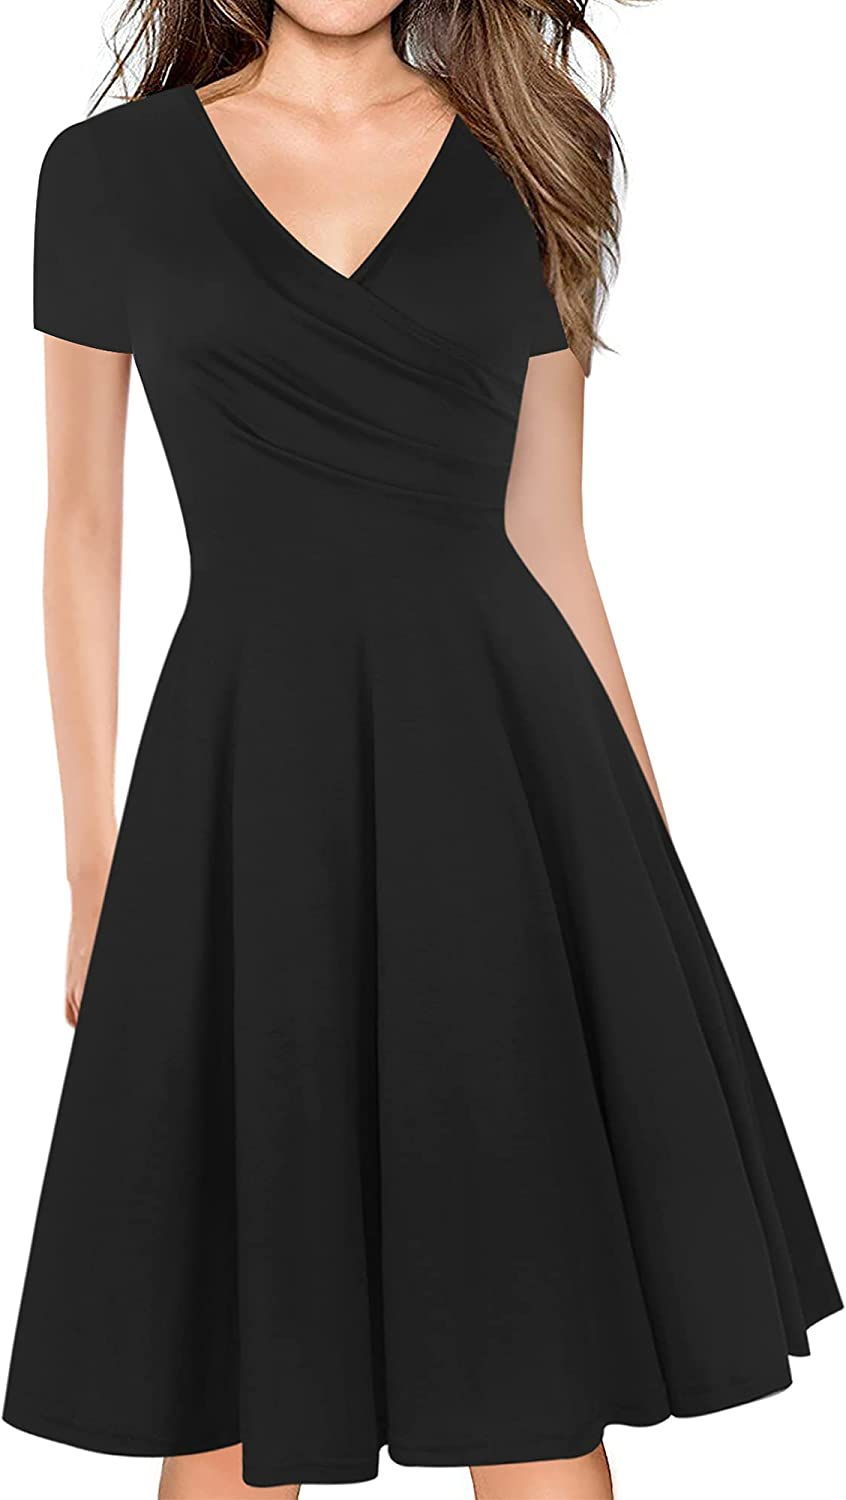 Sale Special Price oxiuly Women's Chic Deep V-Neck Casual A-Line Gradu Deluxe Summer Dress